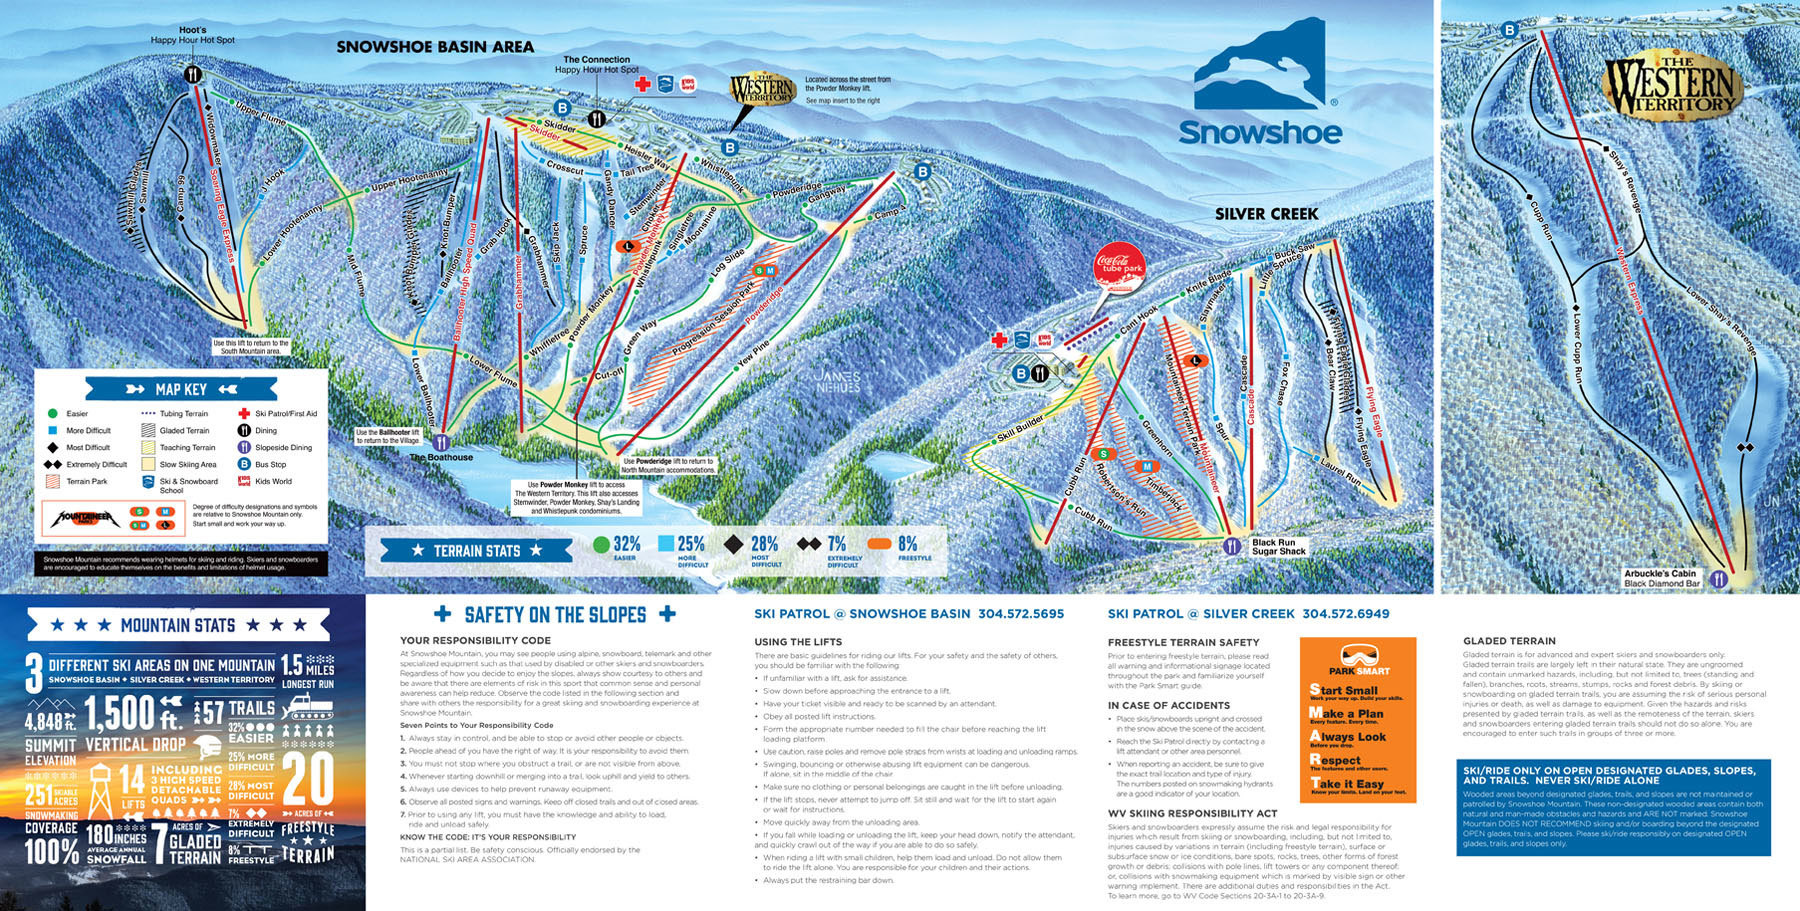 Snowshoe Mountain Resort Mountain Stats Info OnTheSnow - Western us ski resorts map